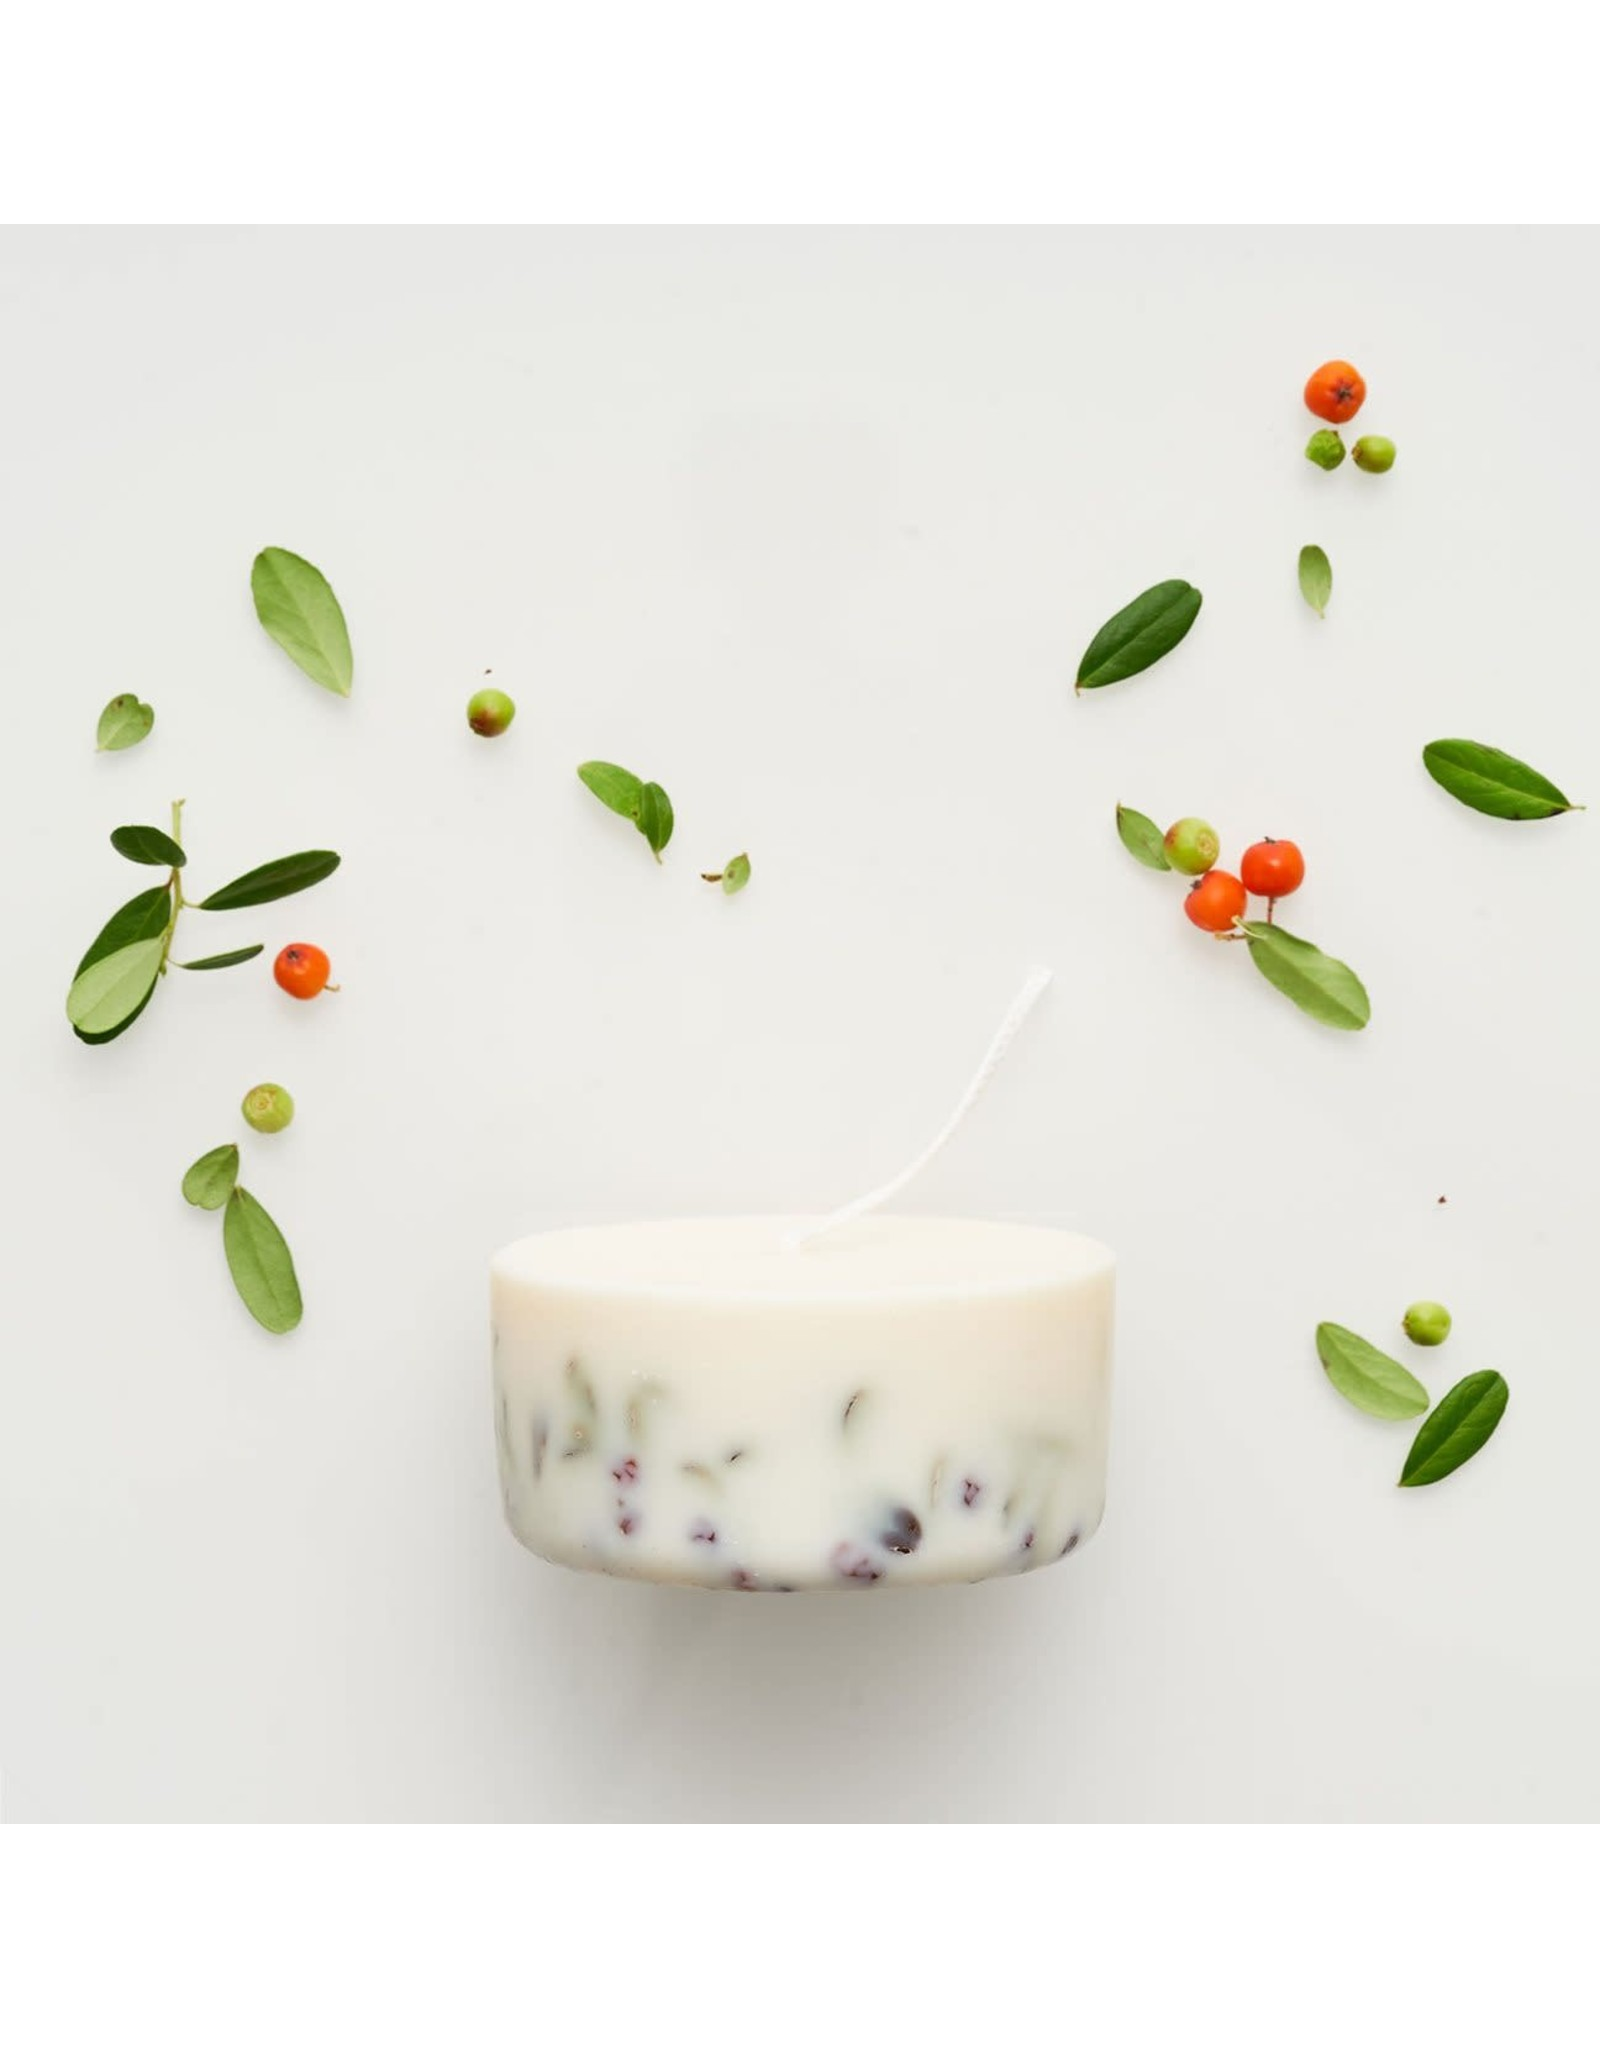 Munio Candela Candle - Ashberries & Bilberry leaves - Natural Soy Wax - 220ml - Dia 8cm x H 4cm - Burn Time 15h